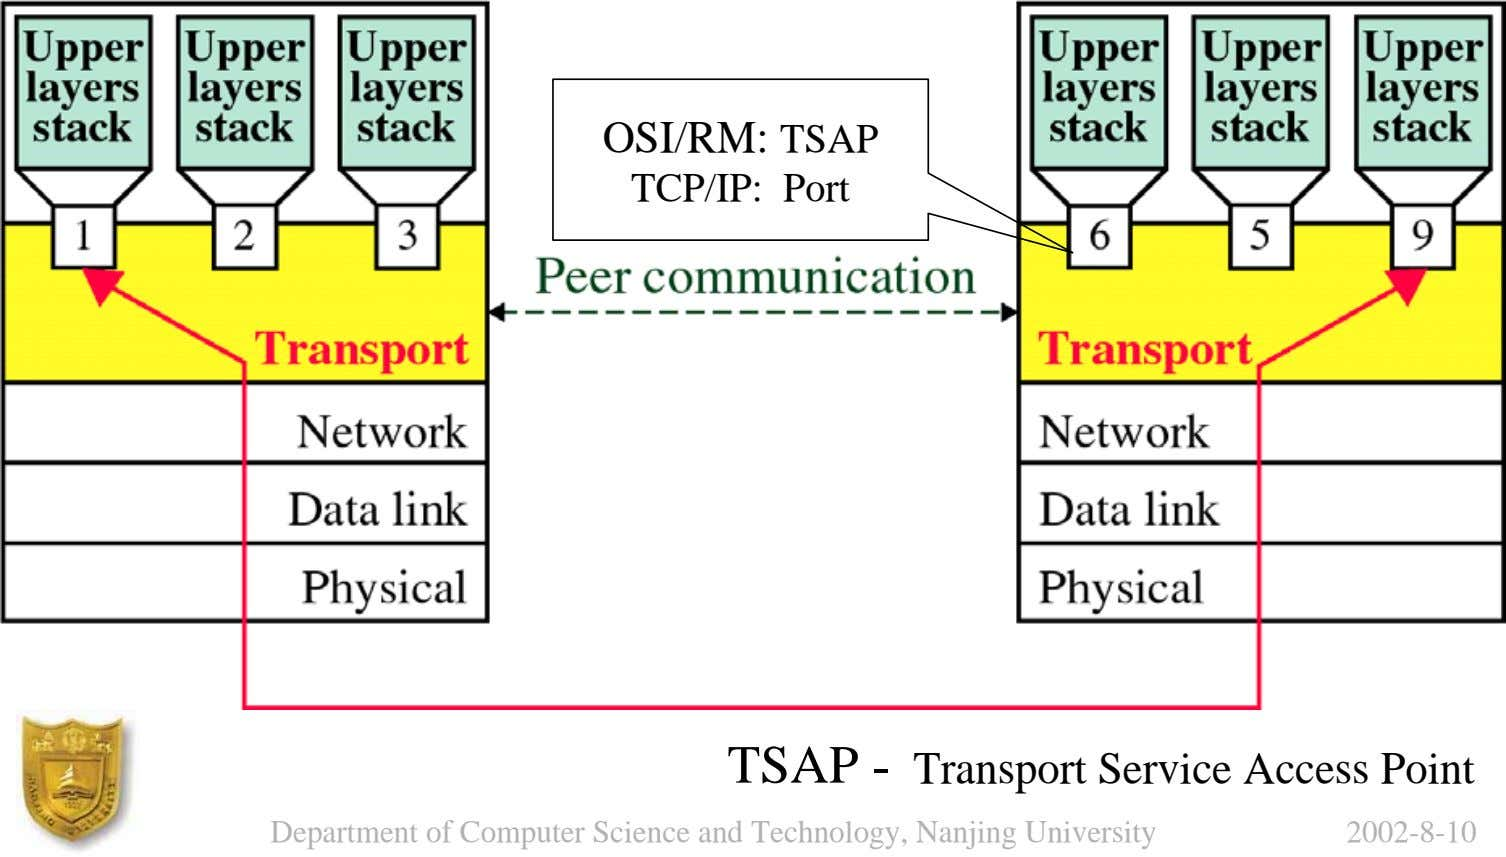 OSI/RM: TSAP TCP/IP: Port TSAP - Transport Service Access Point Department of Computer Science and